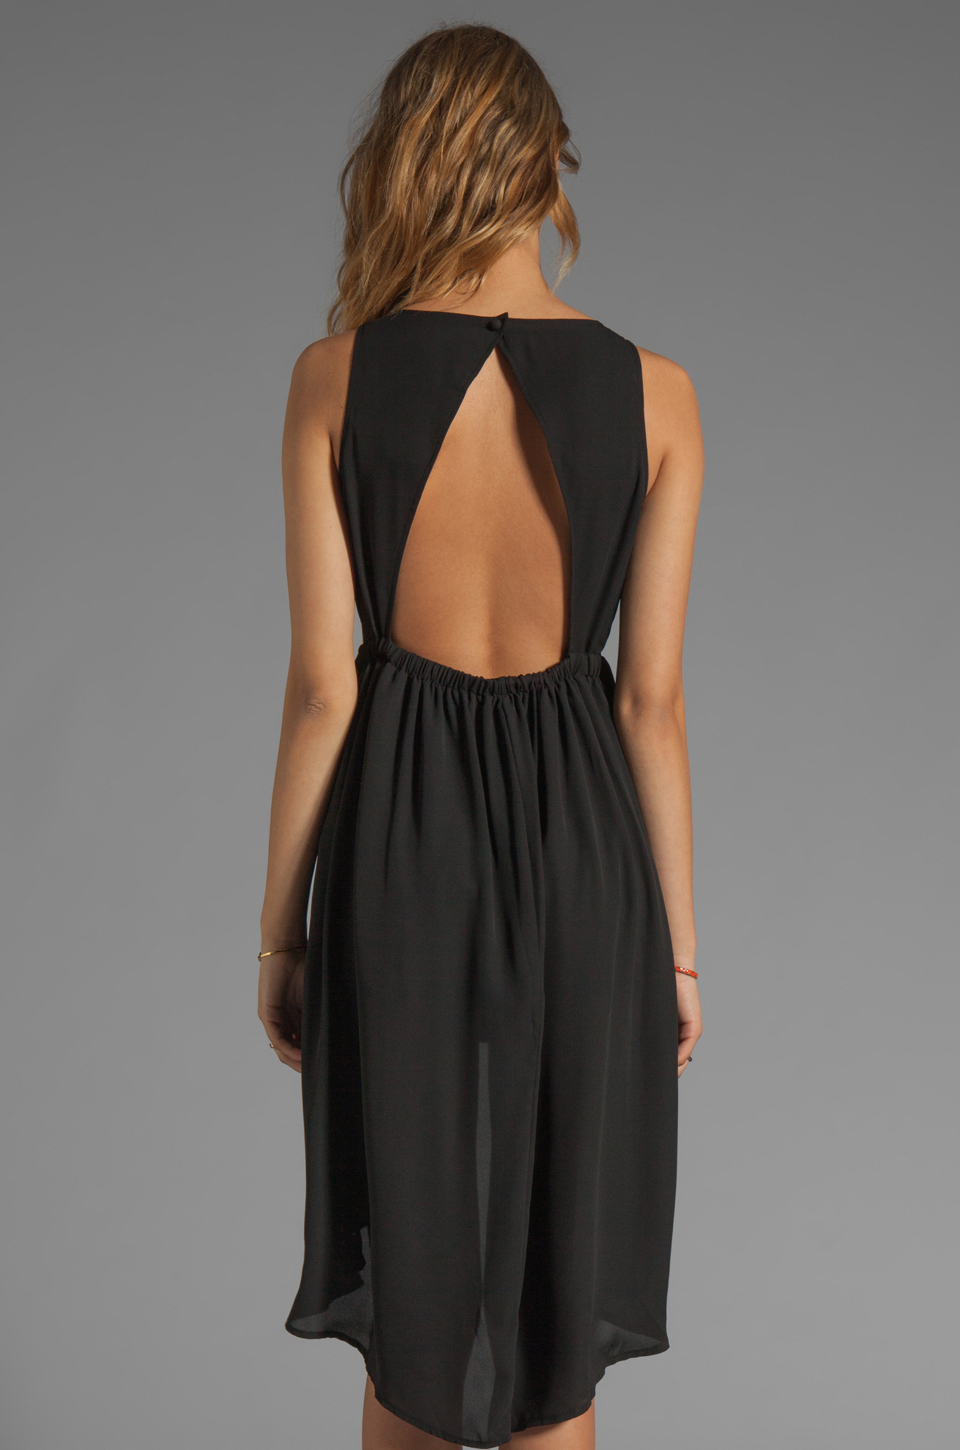 JARLO Allondra Tank Dress in Black